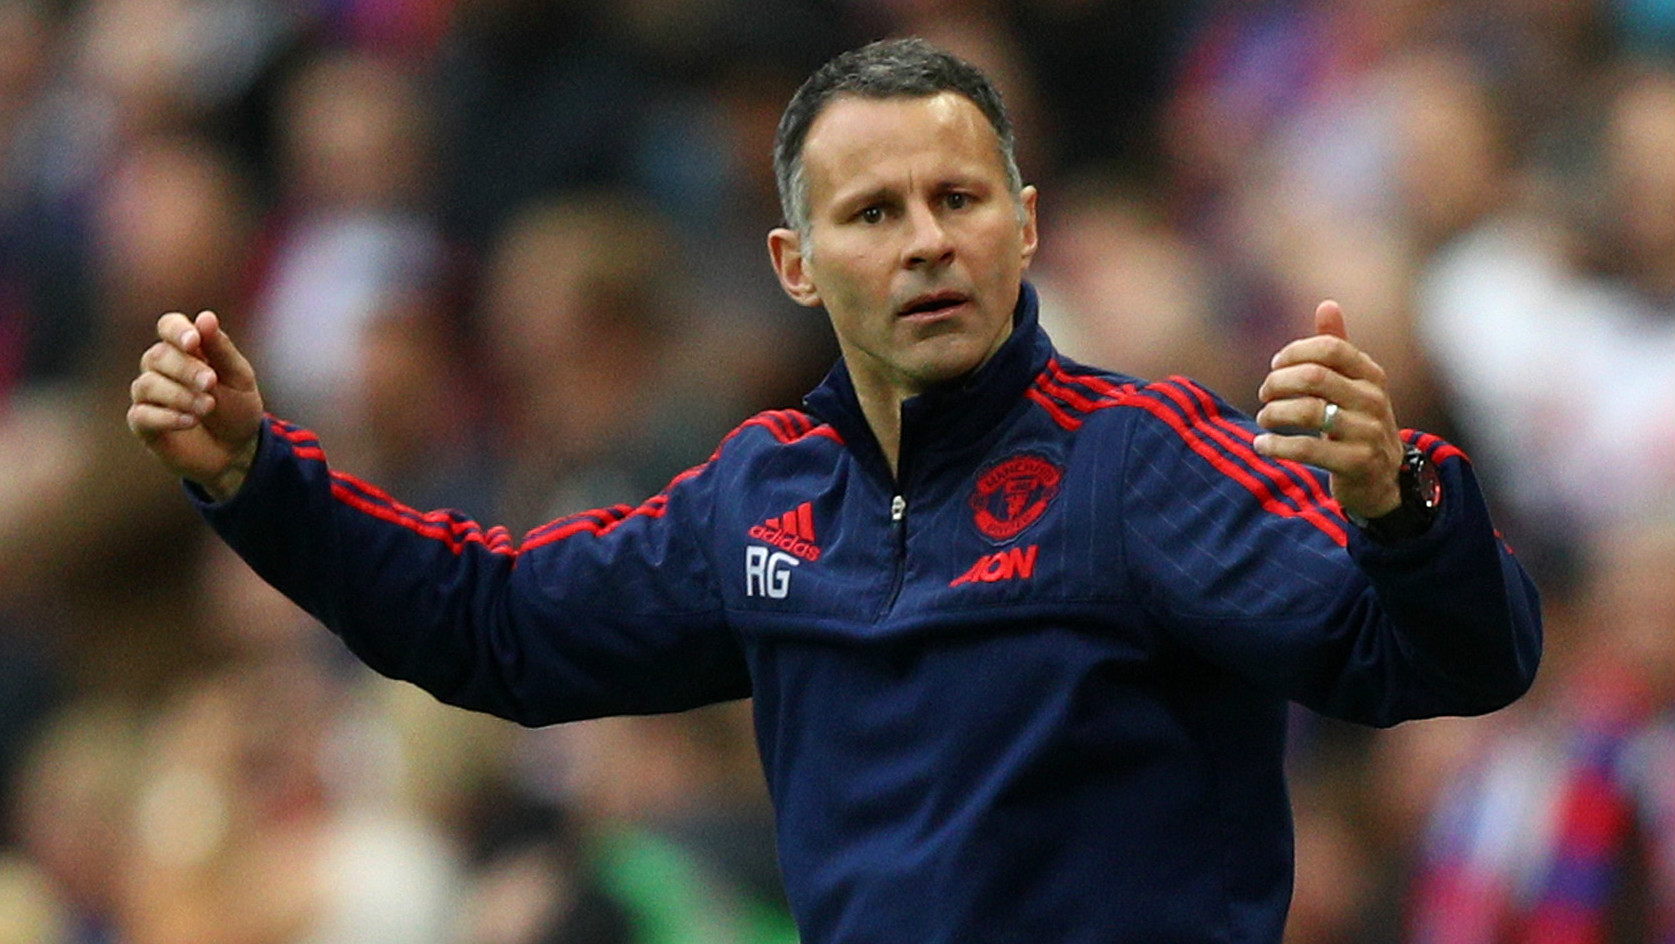 HD Ryan Giggs Manchester United